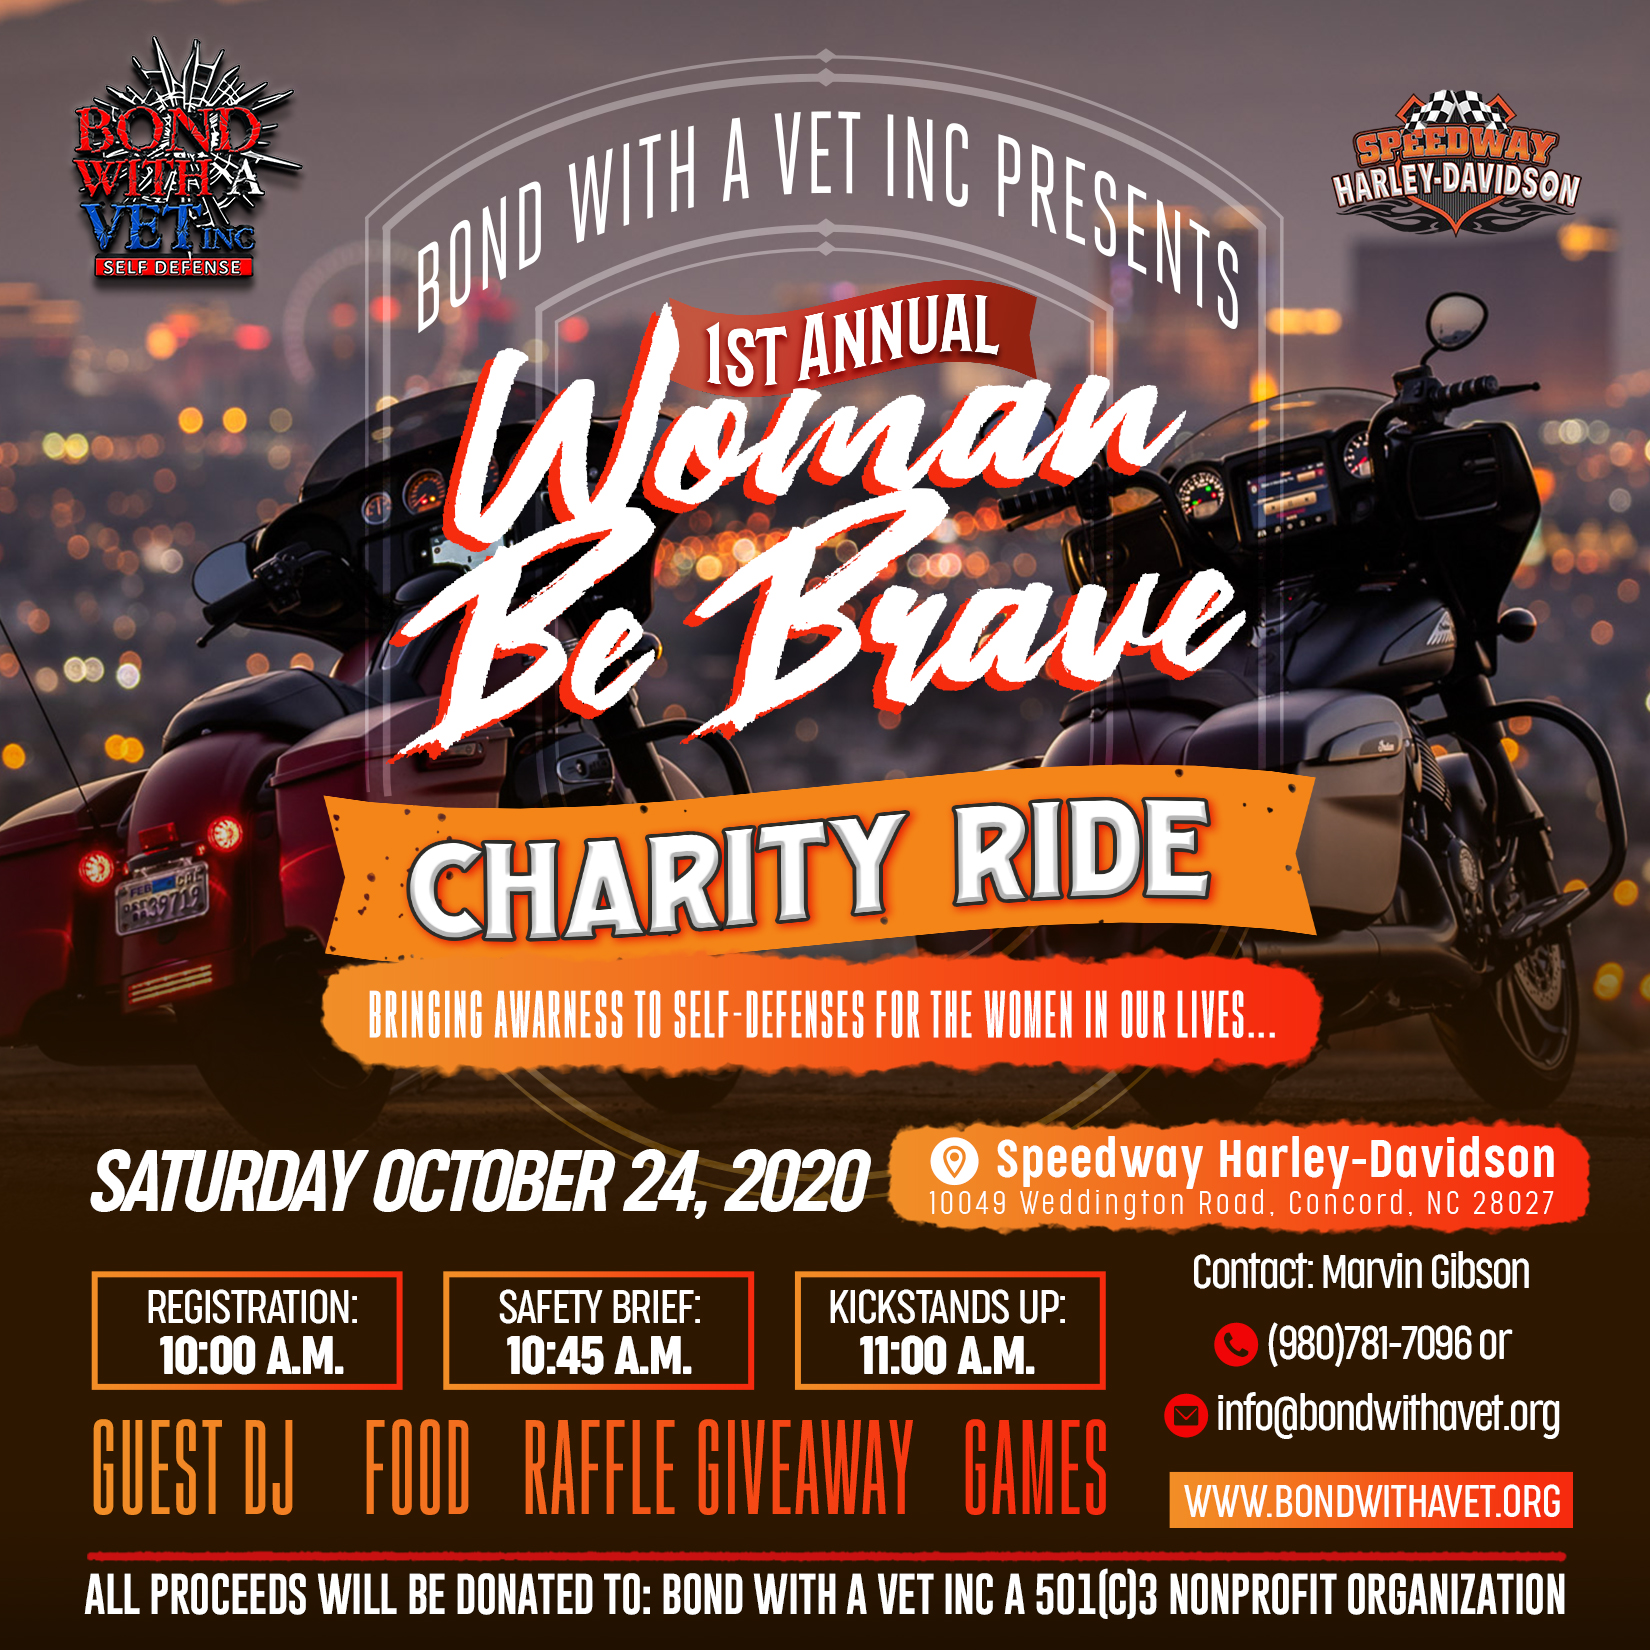 Woman Be Brave Charity Ride